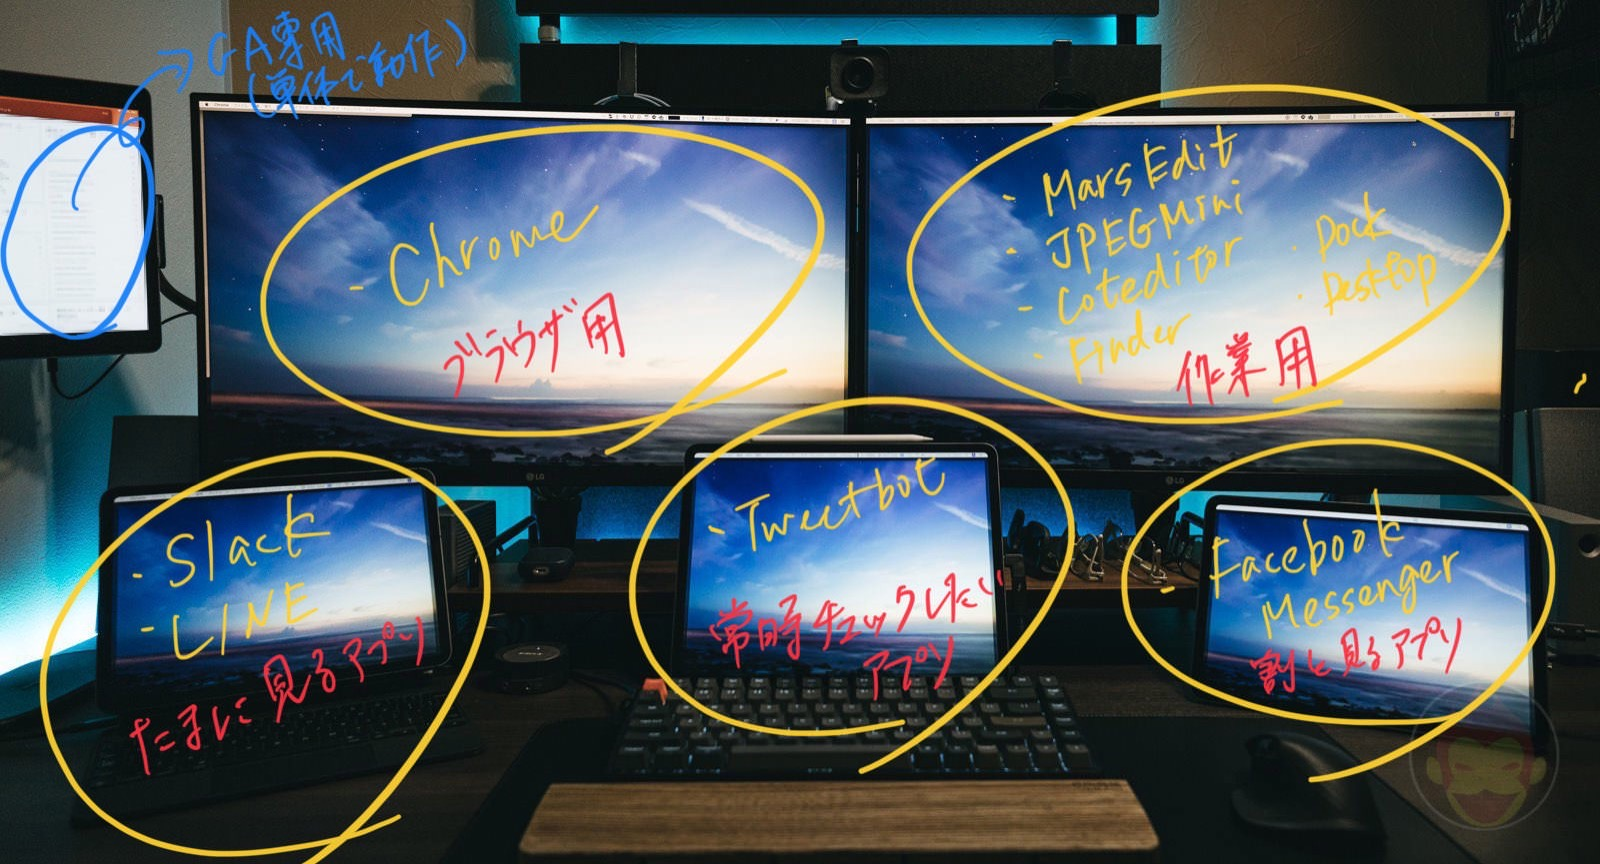 2-4k-displays-3-ipadpros-multimoniter-edited.jpg